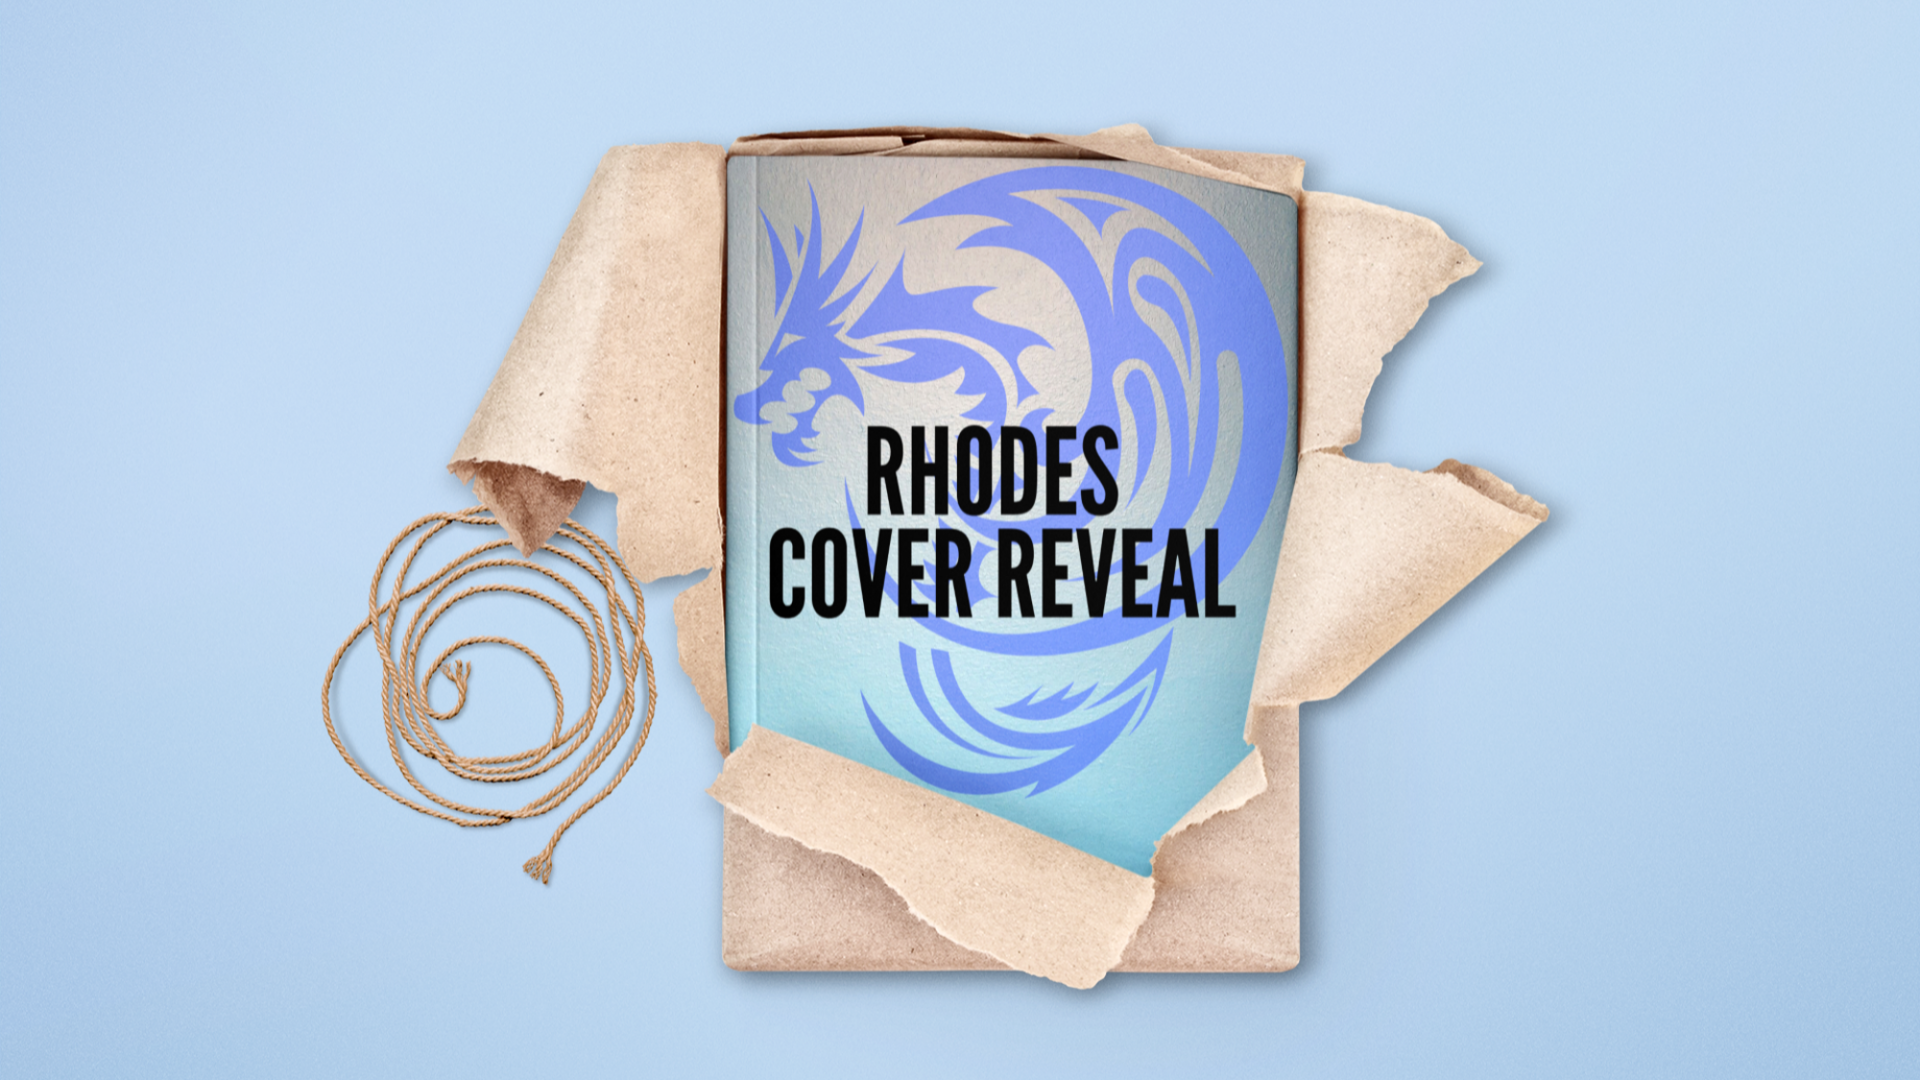 Cover Reveal Sign Up - RHODES